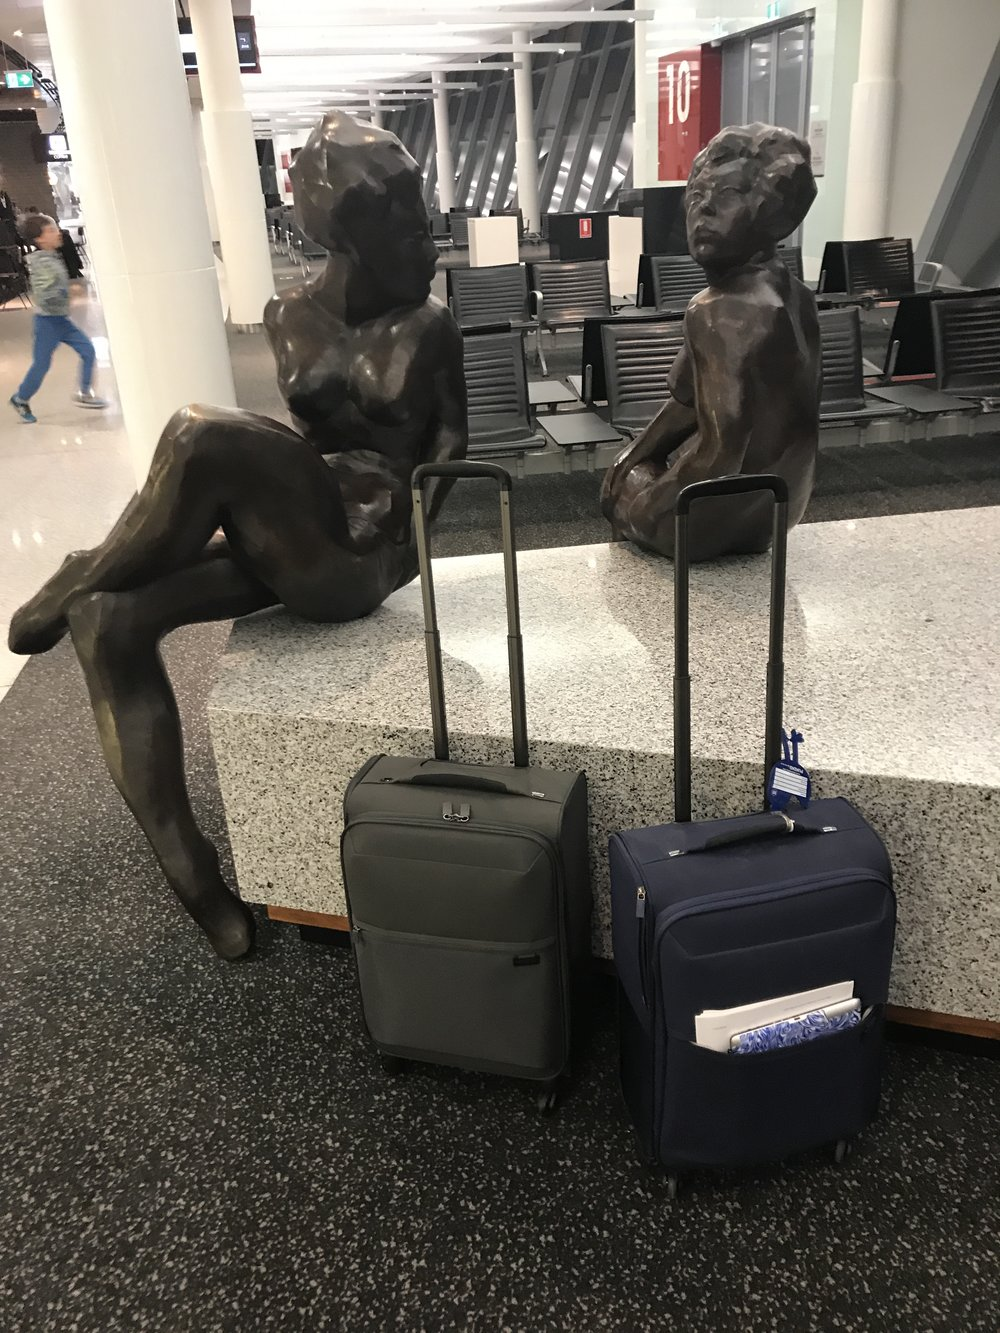 At the start of our trip: leaving Canberra airport with our matching Samsonite bags.